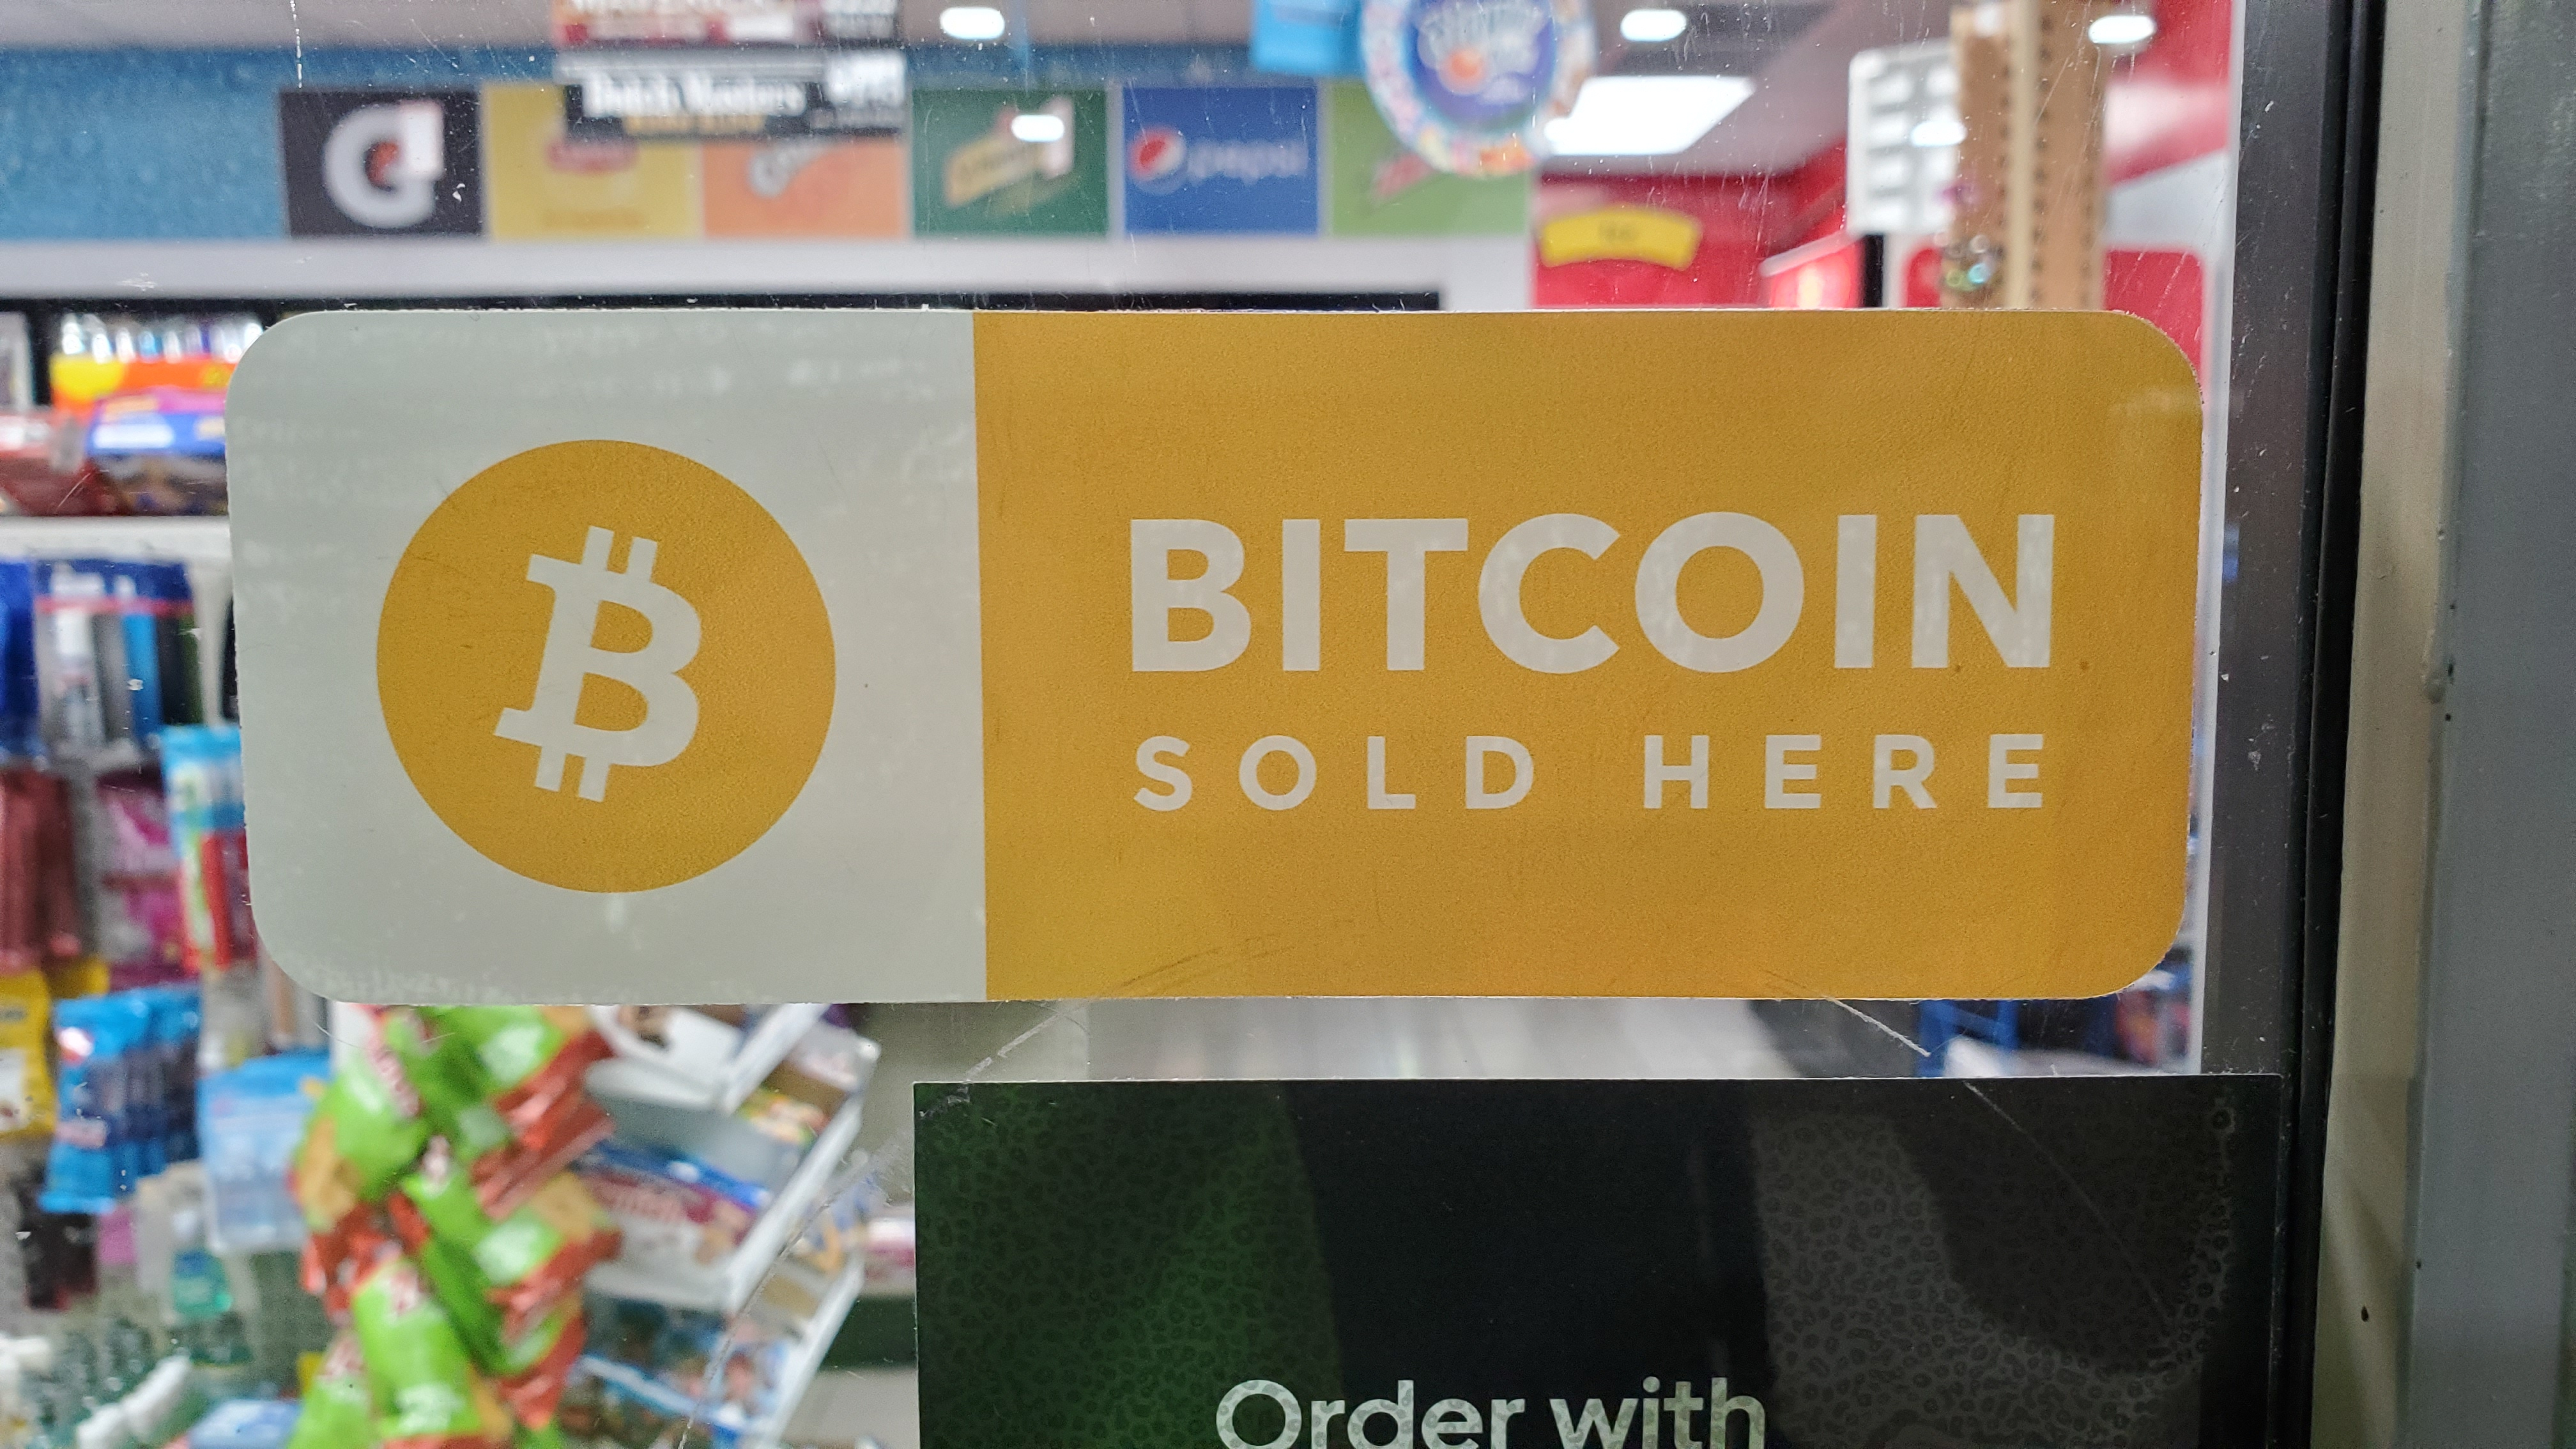 Bitcoin Sold Here